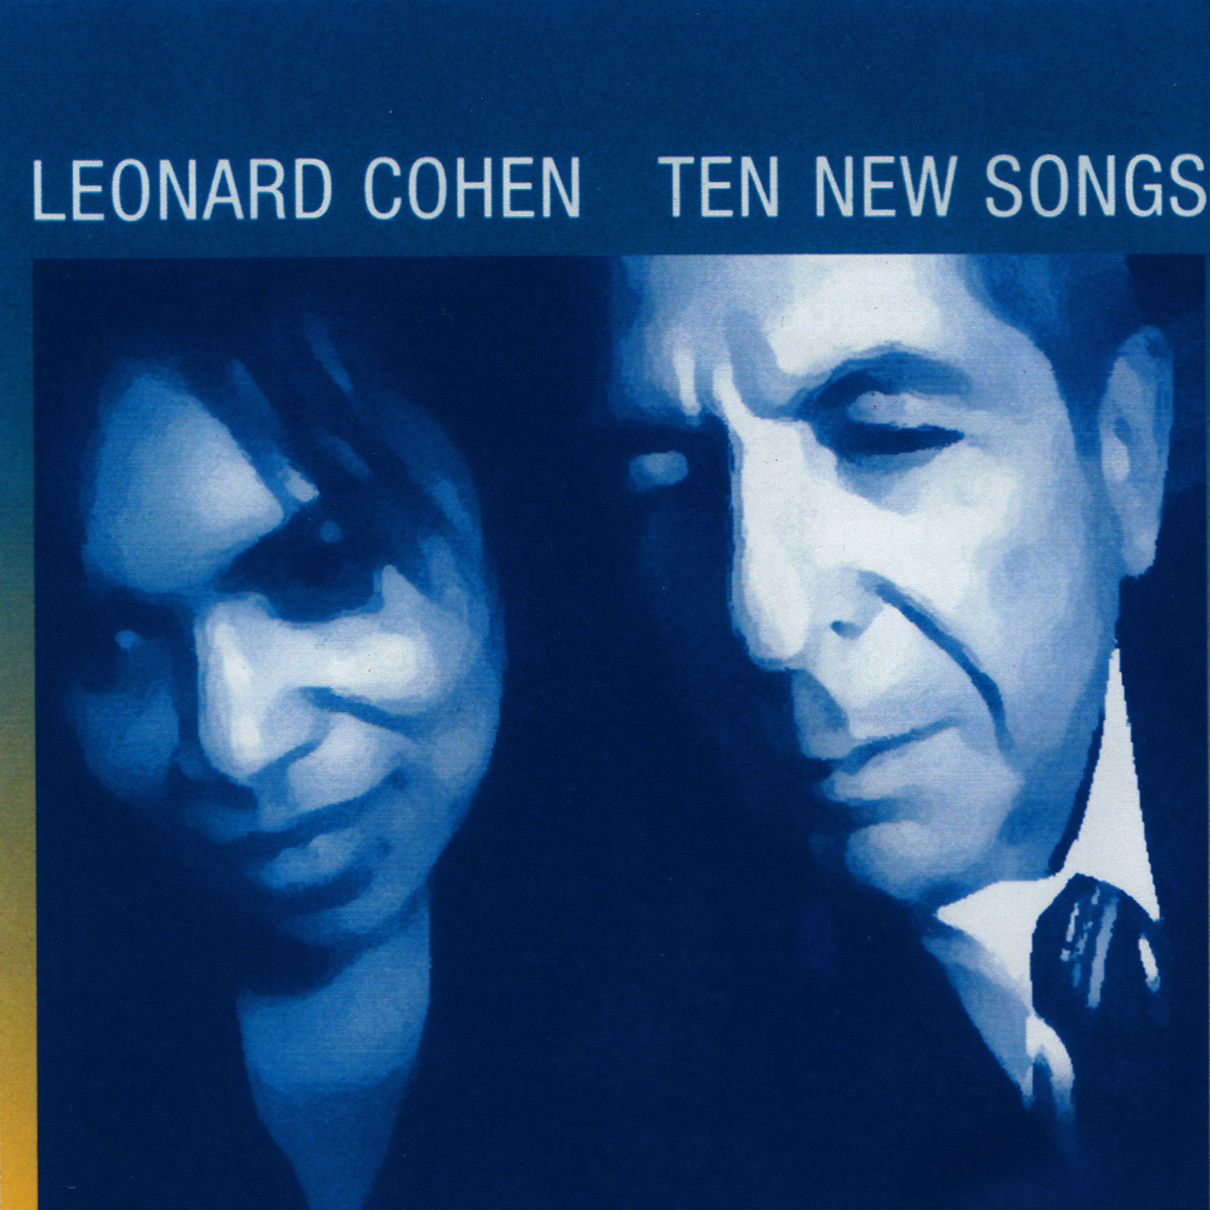 harga CD MUSIC LEONARD COHEN TEN NEW SONGS Tokopedia.com